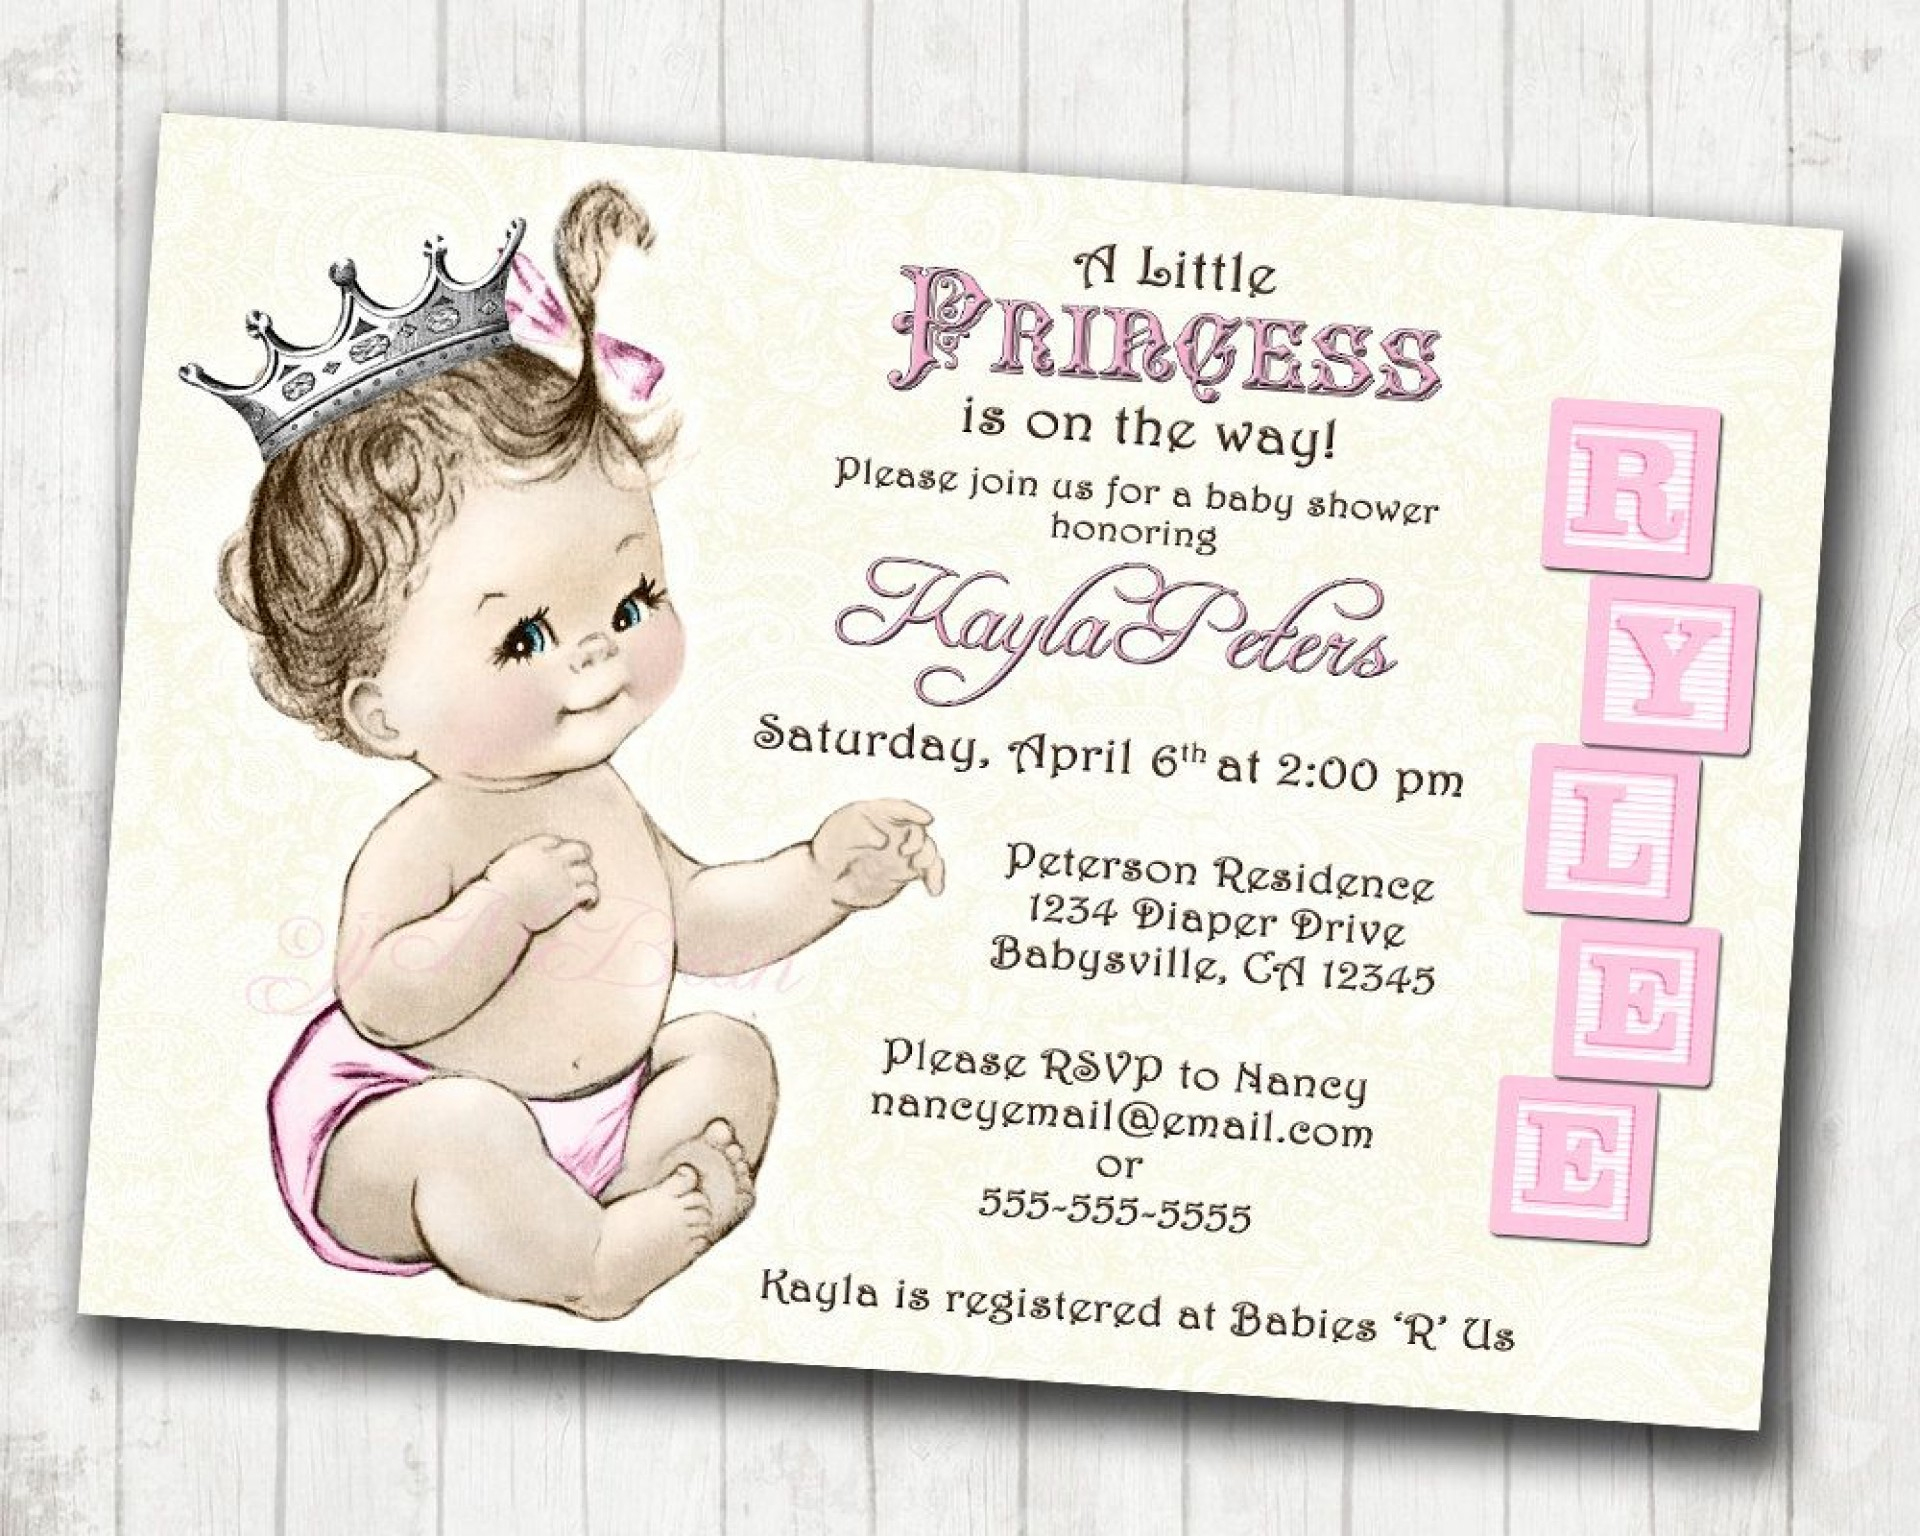 Astounding Princess Baby Shower Invitations Templates ~ Ulyssesroom - Free Printable Princess Baby Shower Invitations